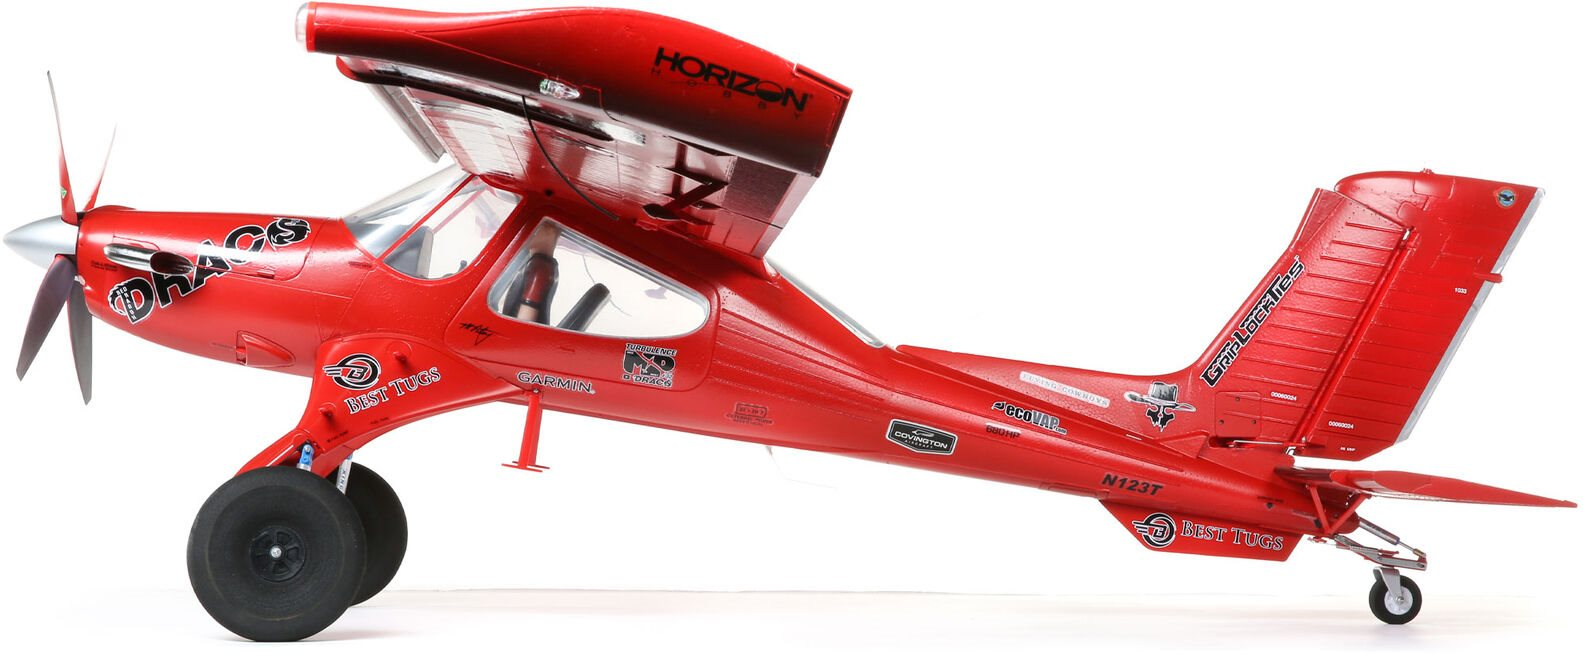 E-Flite Draco 2.0m with Smart BNF